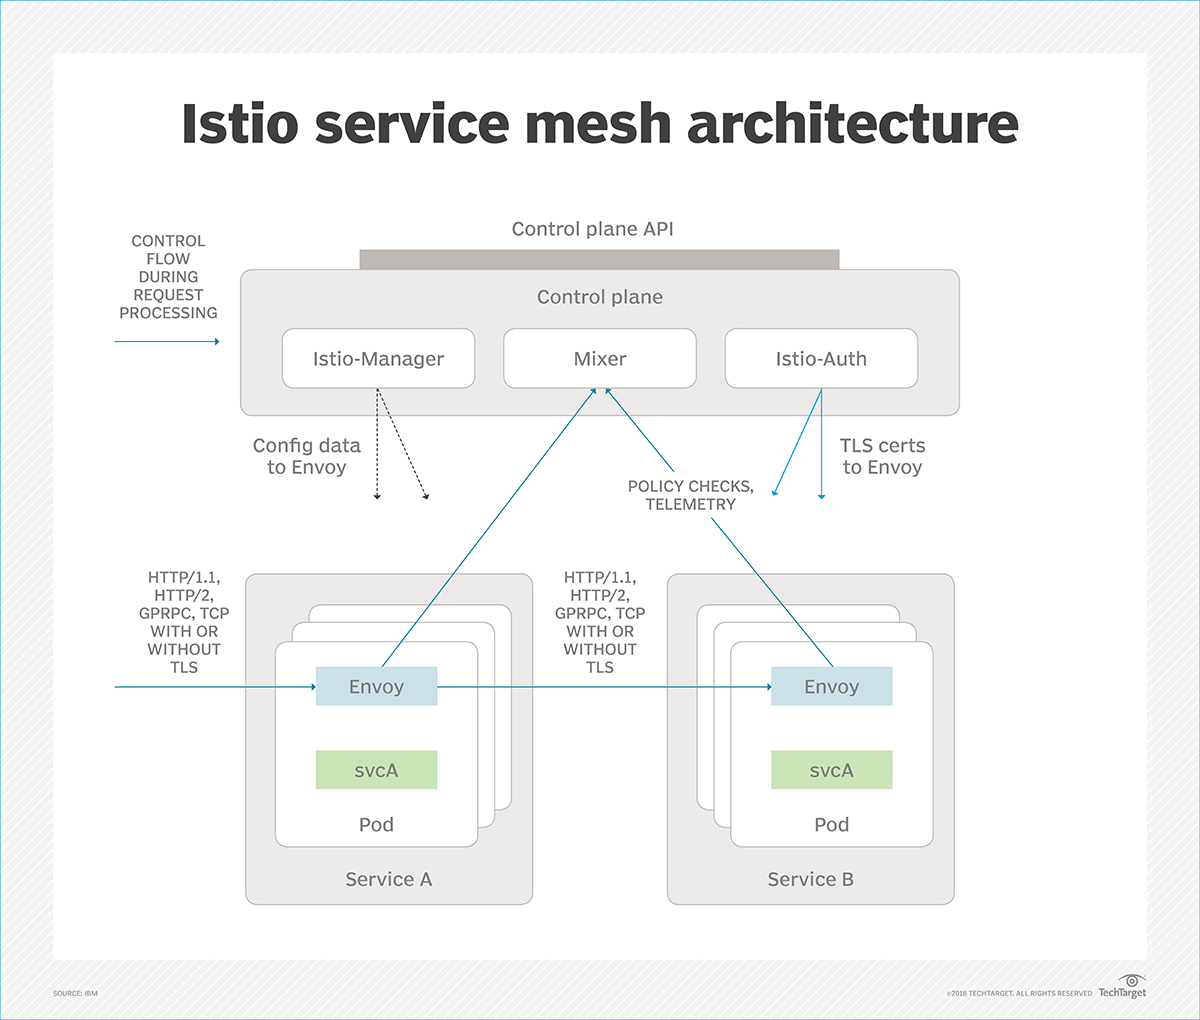 Istio service mesh vies for lead in microservices market